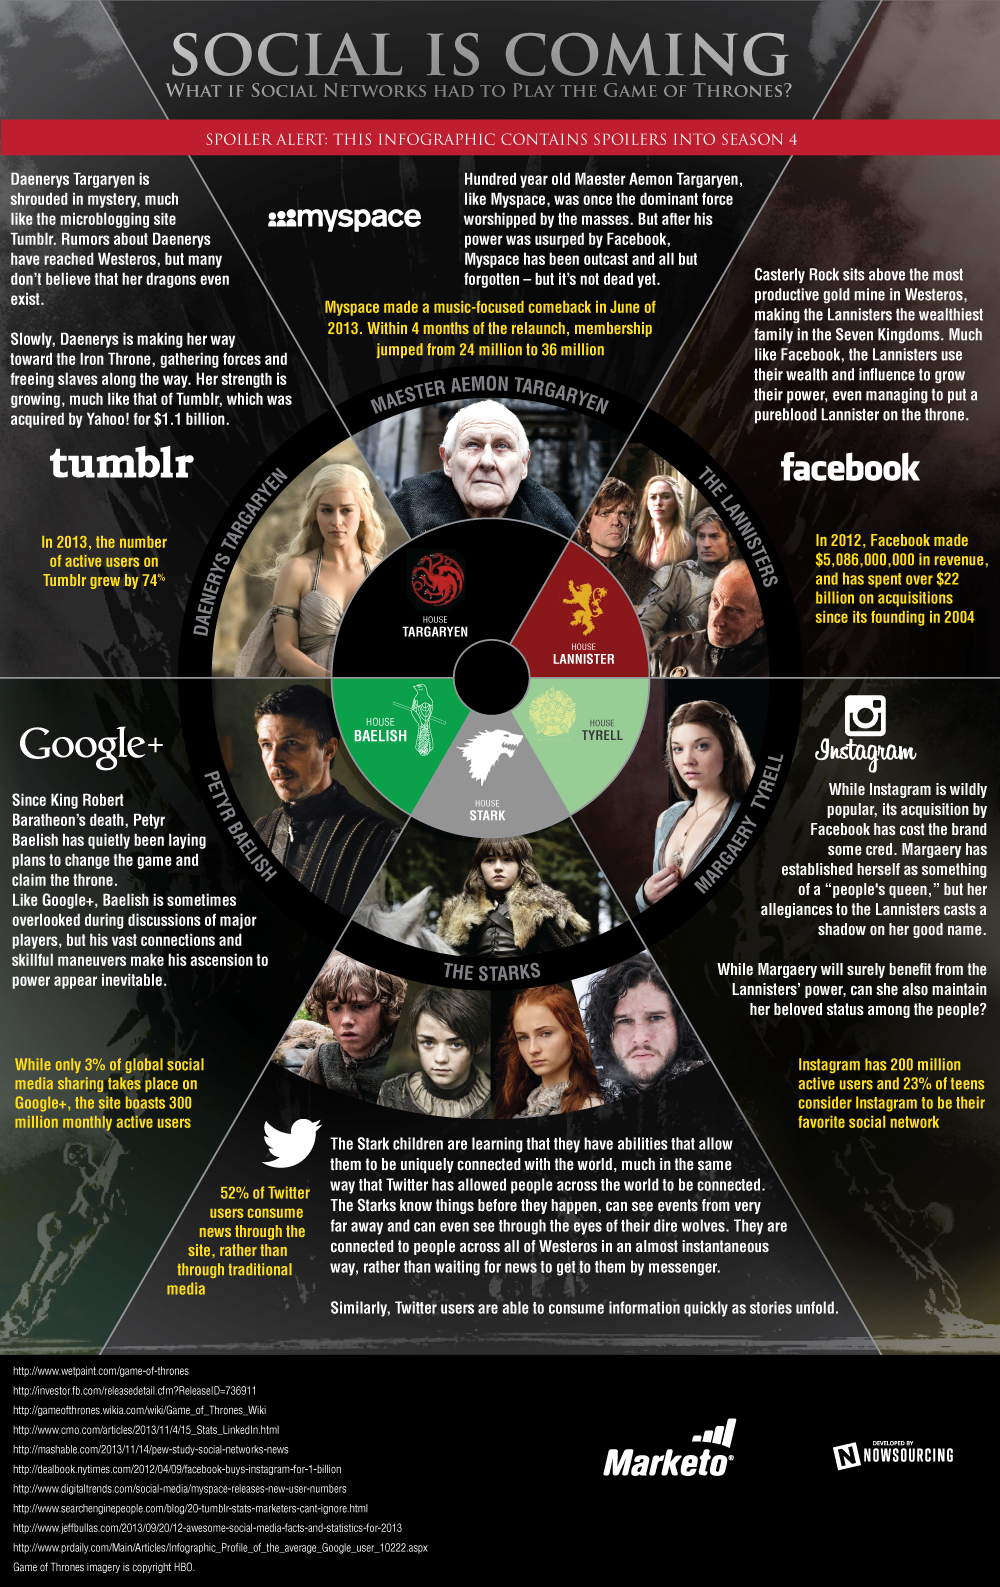 Social is Coming Game of Thrones Infographic